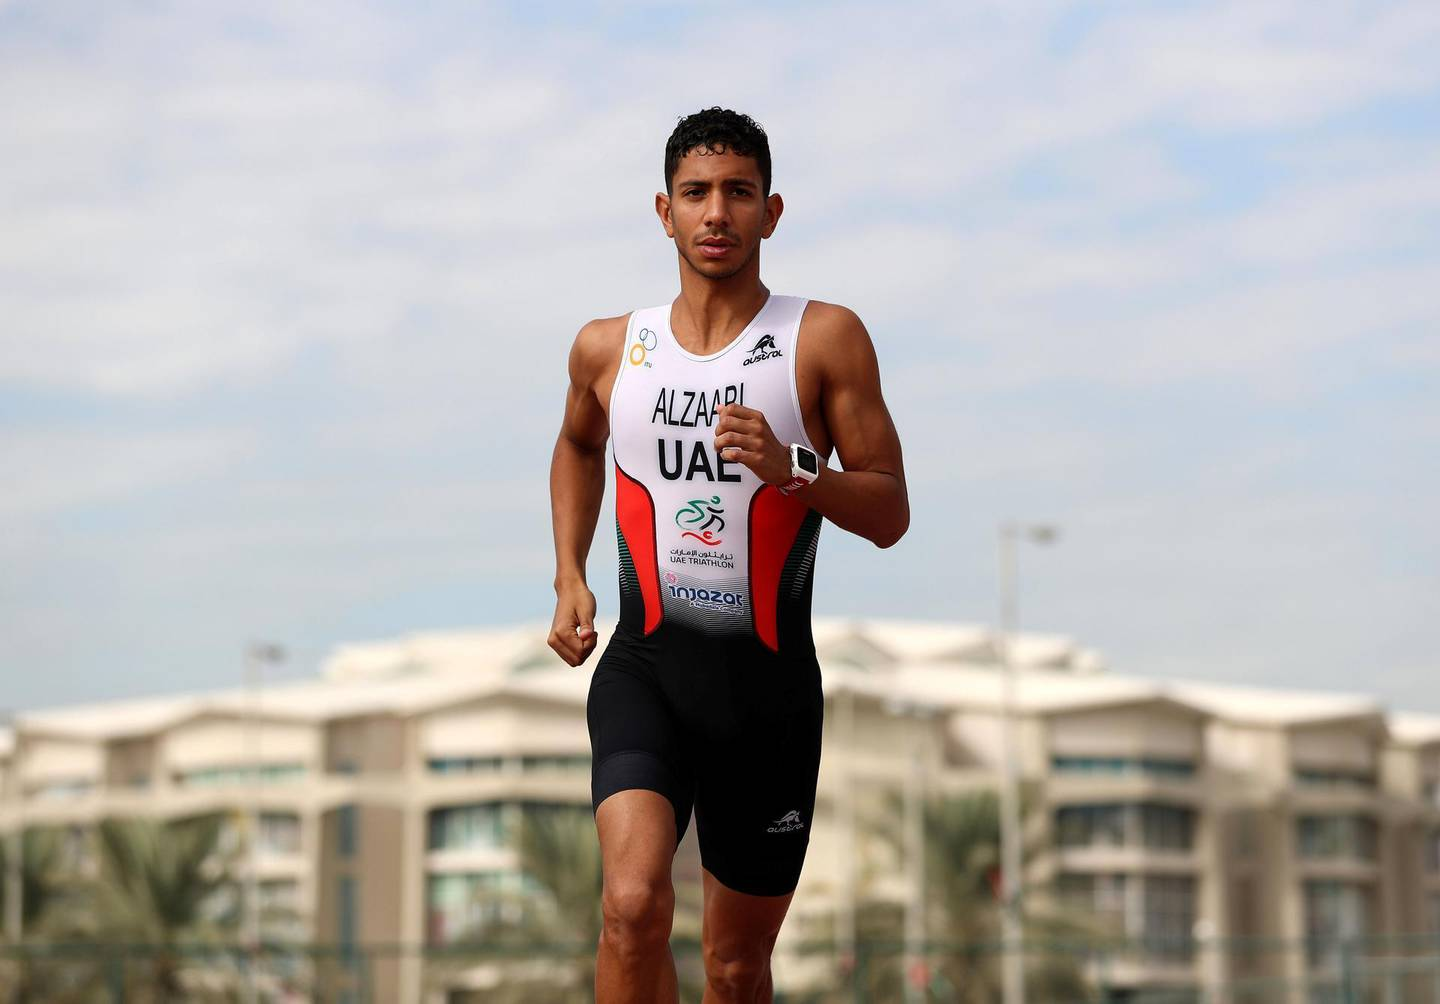 Abu Dhabi, United Arab Emirates - Reporter: Amith Passela: Faris Al Zaabi is the first and only Emirati professional triathlete, and the first to take part in the ITU World Grand Finale in Switzerland last year. The interview is about his preparation and schedule for 2020. Monday, December 23rd, 2019. Zayed Sports City, Abu Dhabi. Chris Whiteoak / The National